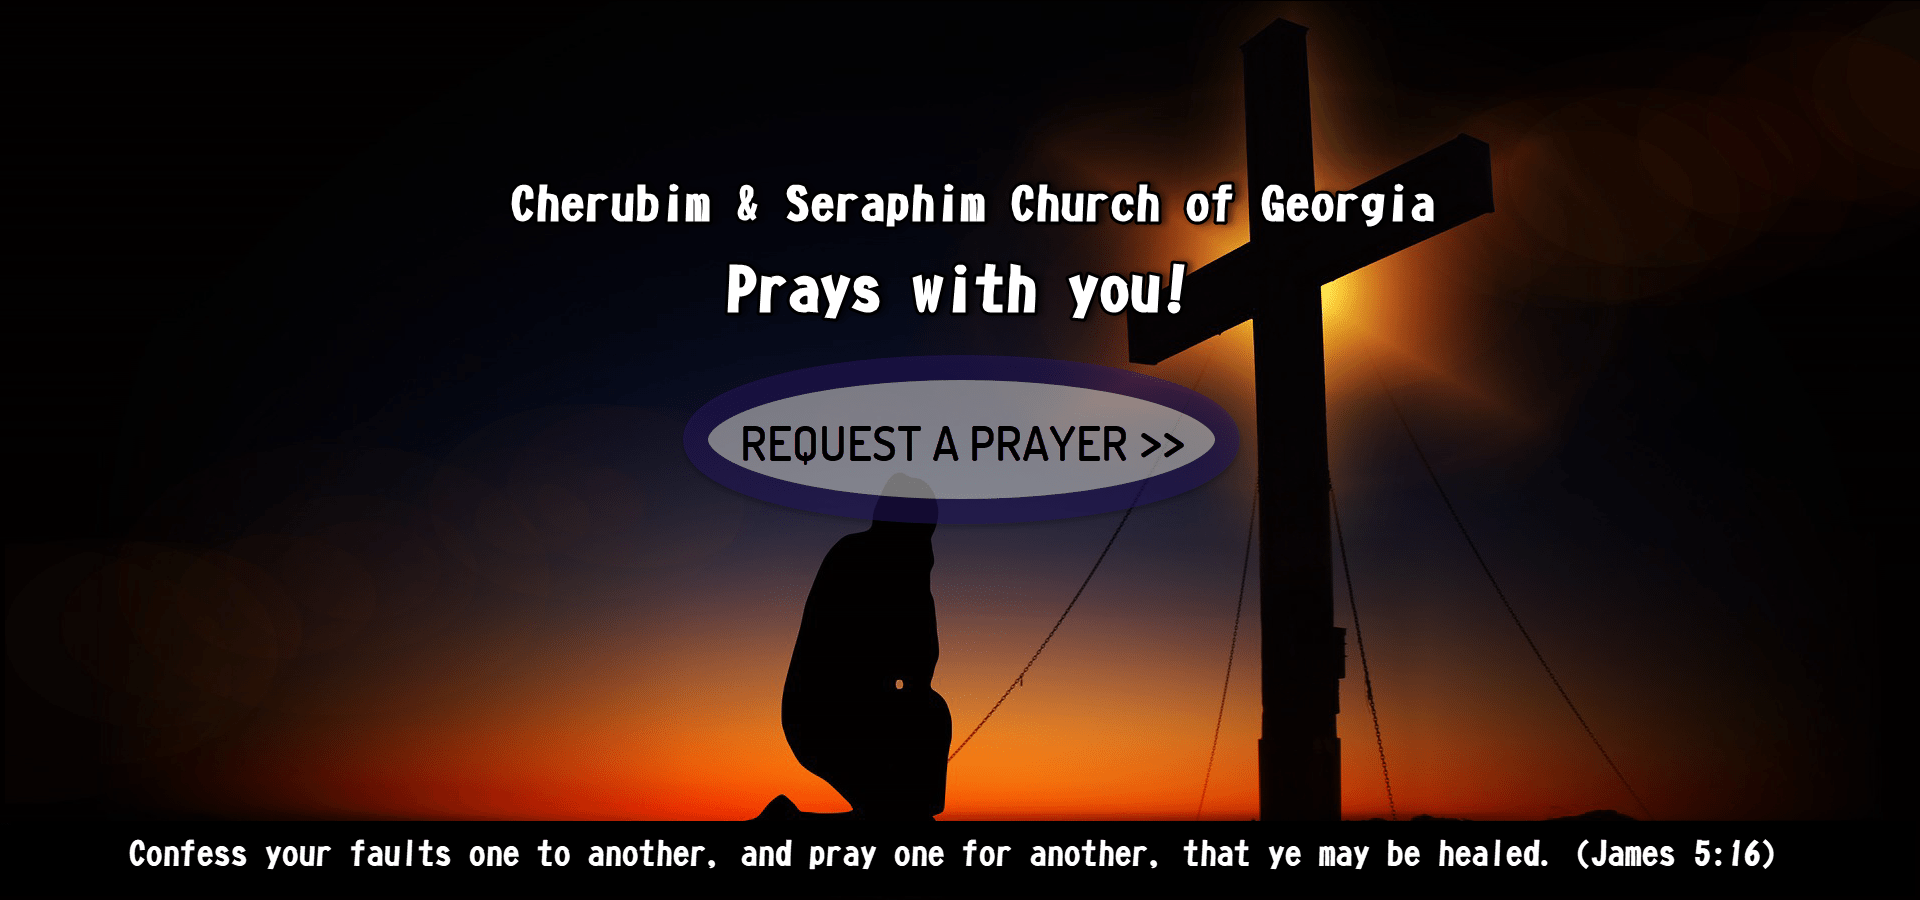 Cherubim and Seraphim Church of Georgia Prayer Requests